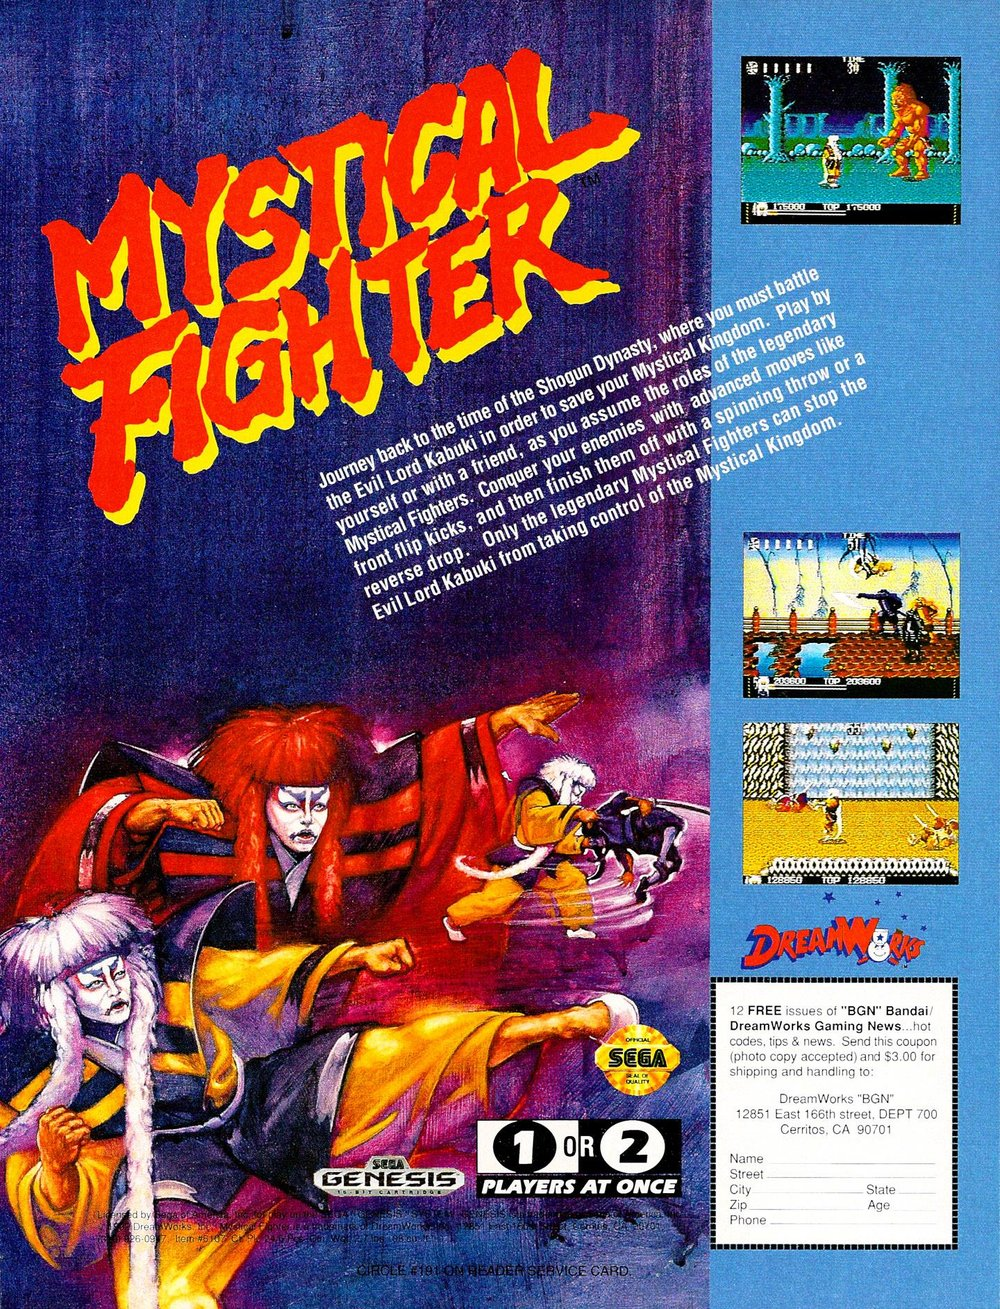 MysticalFighter_MD_US_PrintAdvert.jpg